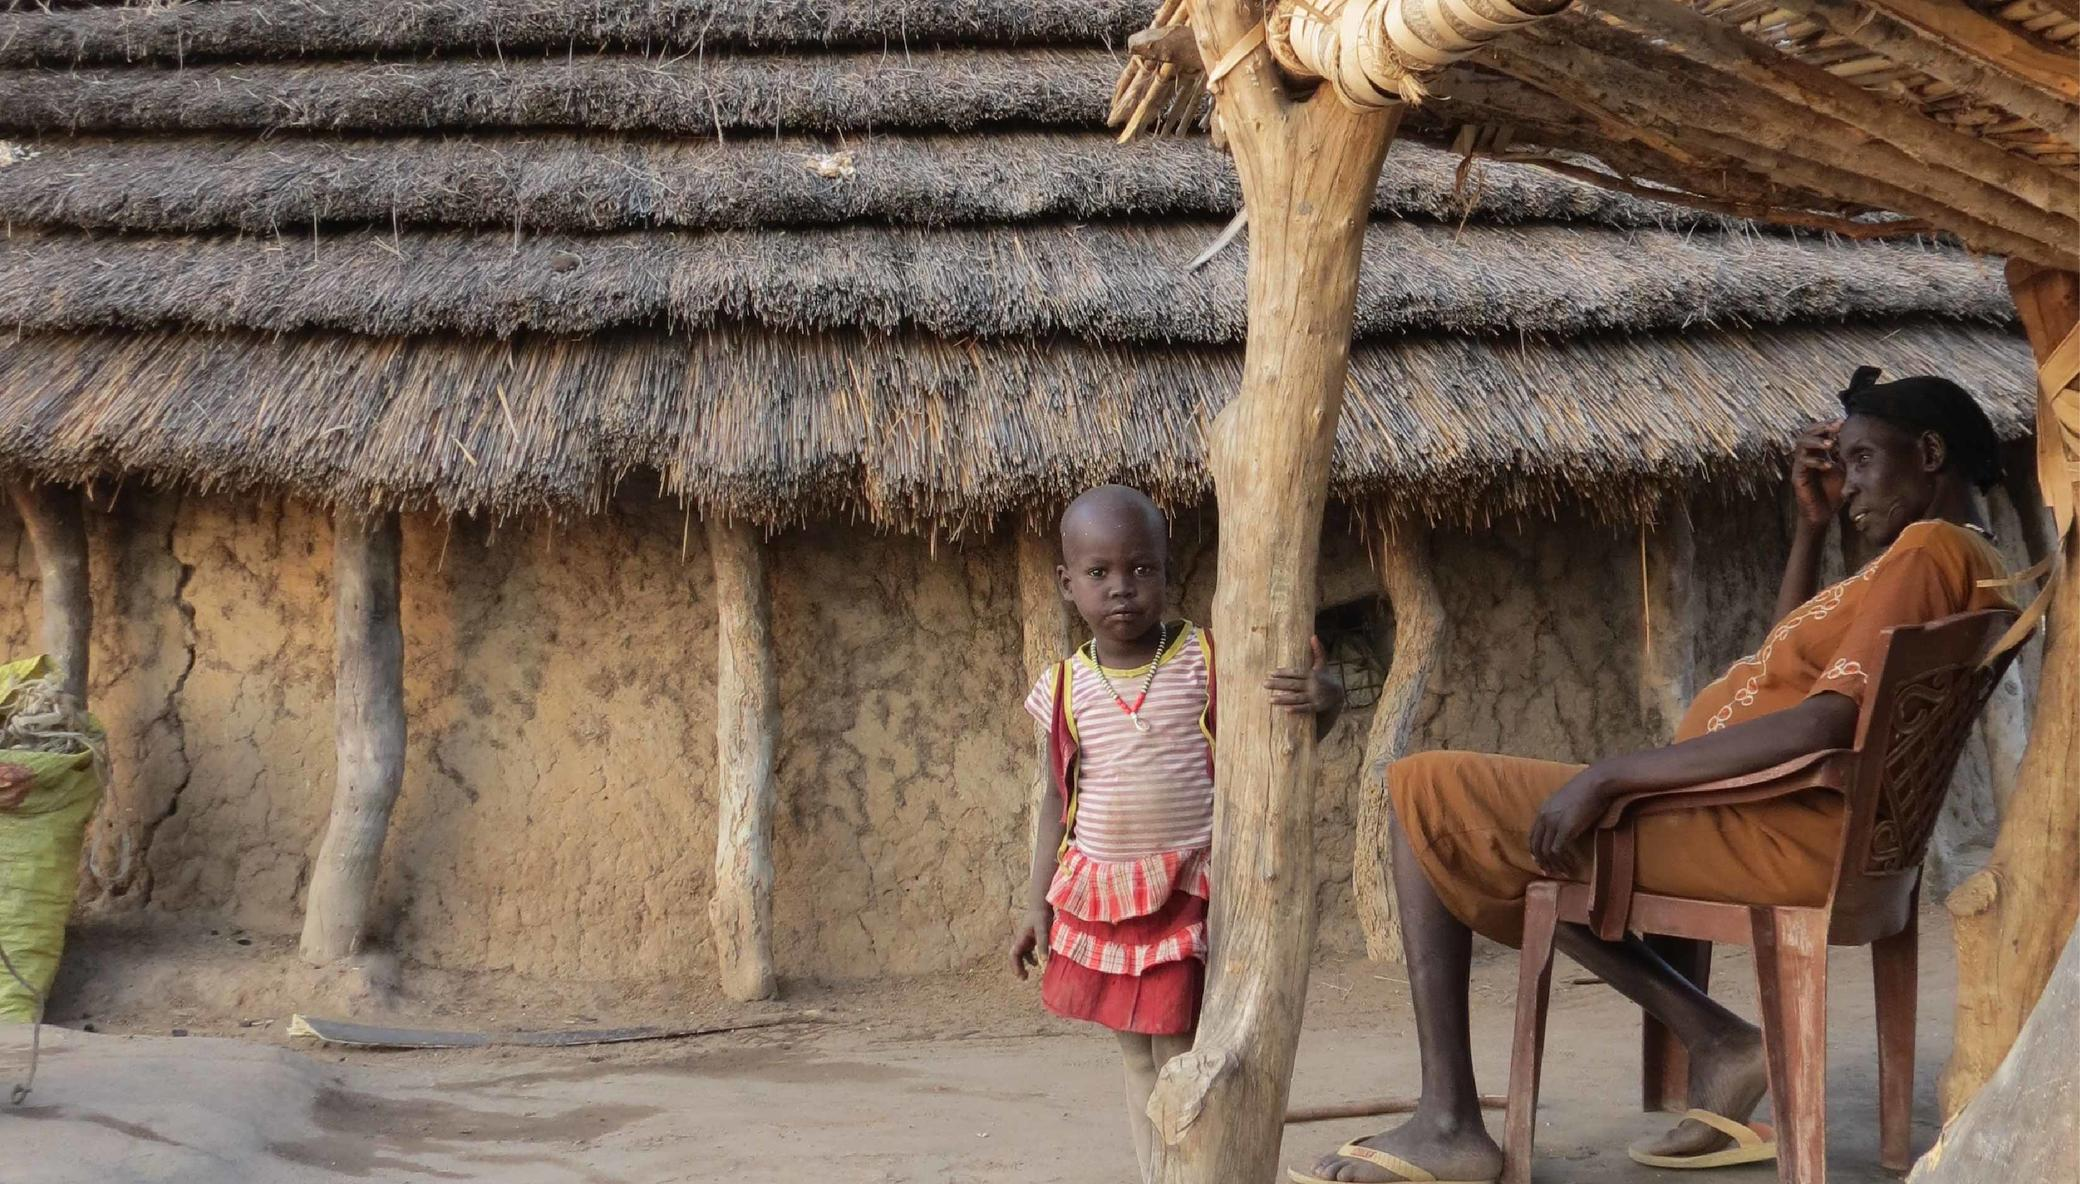 Drill a well for 750 villagers in South Sudan.